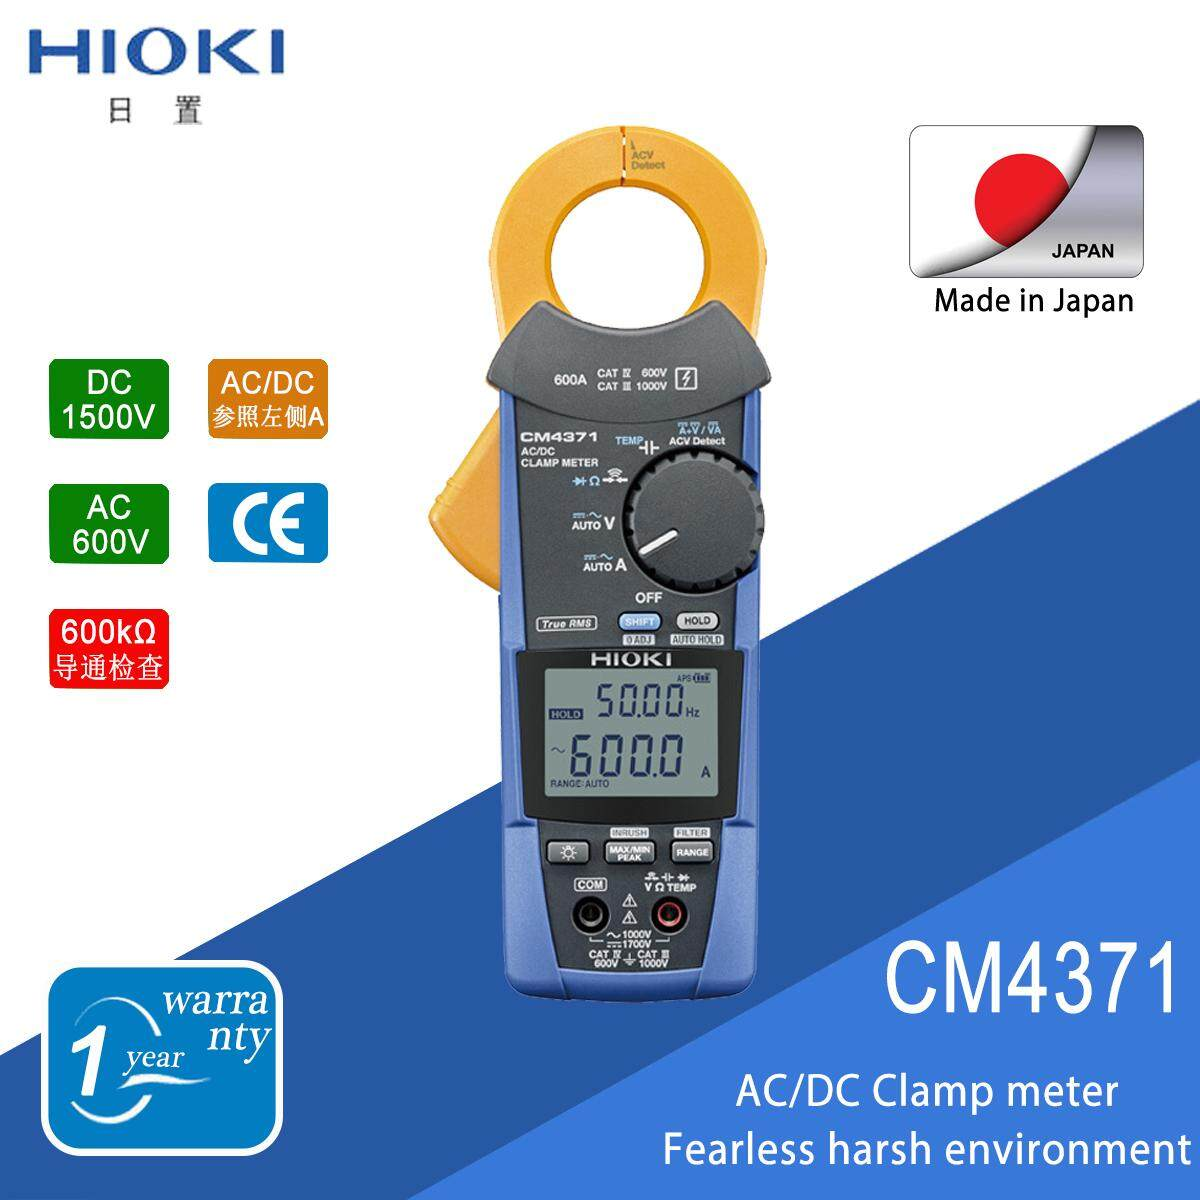 HIOKI CM4371 CM4372 CM4373 CM4374 True RMS AC/DC Clamp Meter 600A for the  Toughest Situations